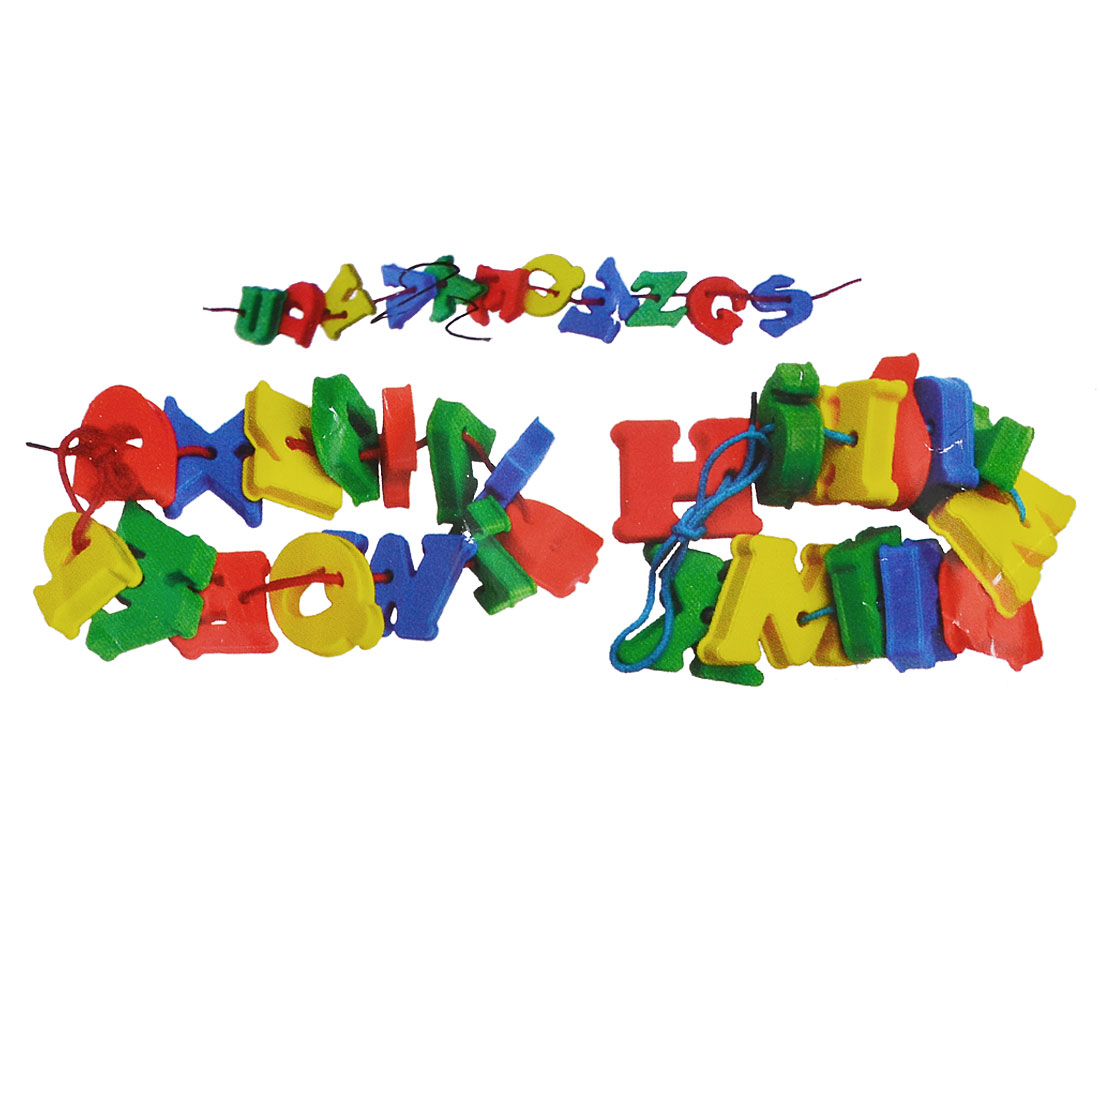 Kids Intelligence Training Plastic Multicolor A-Z English Letters Toy 104 in 1